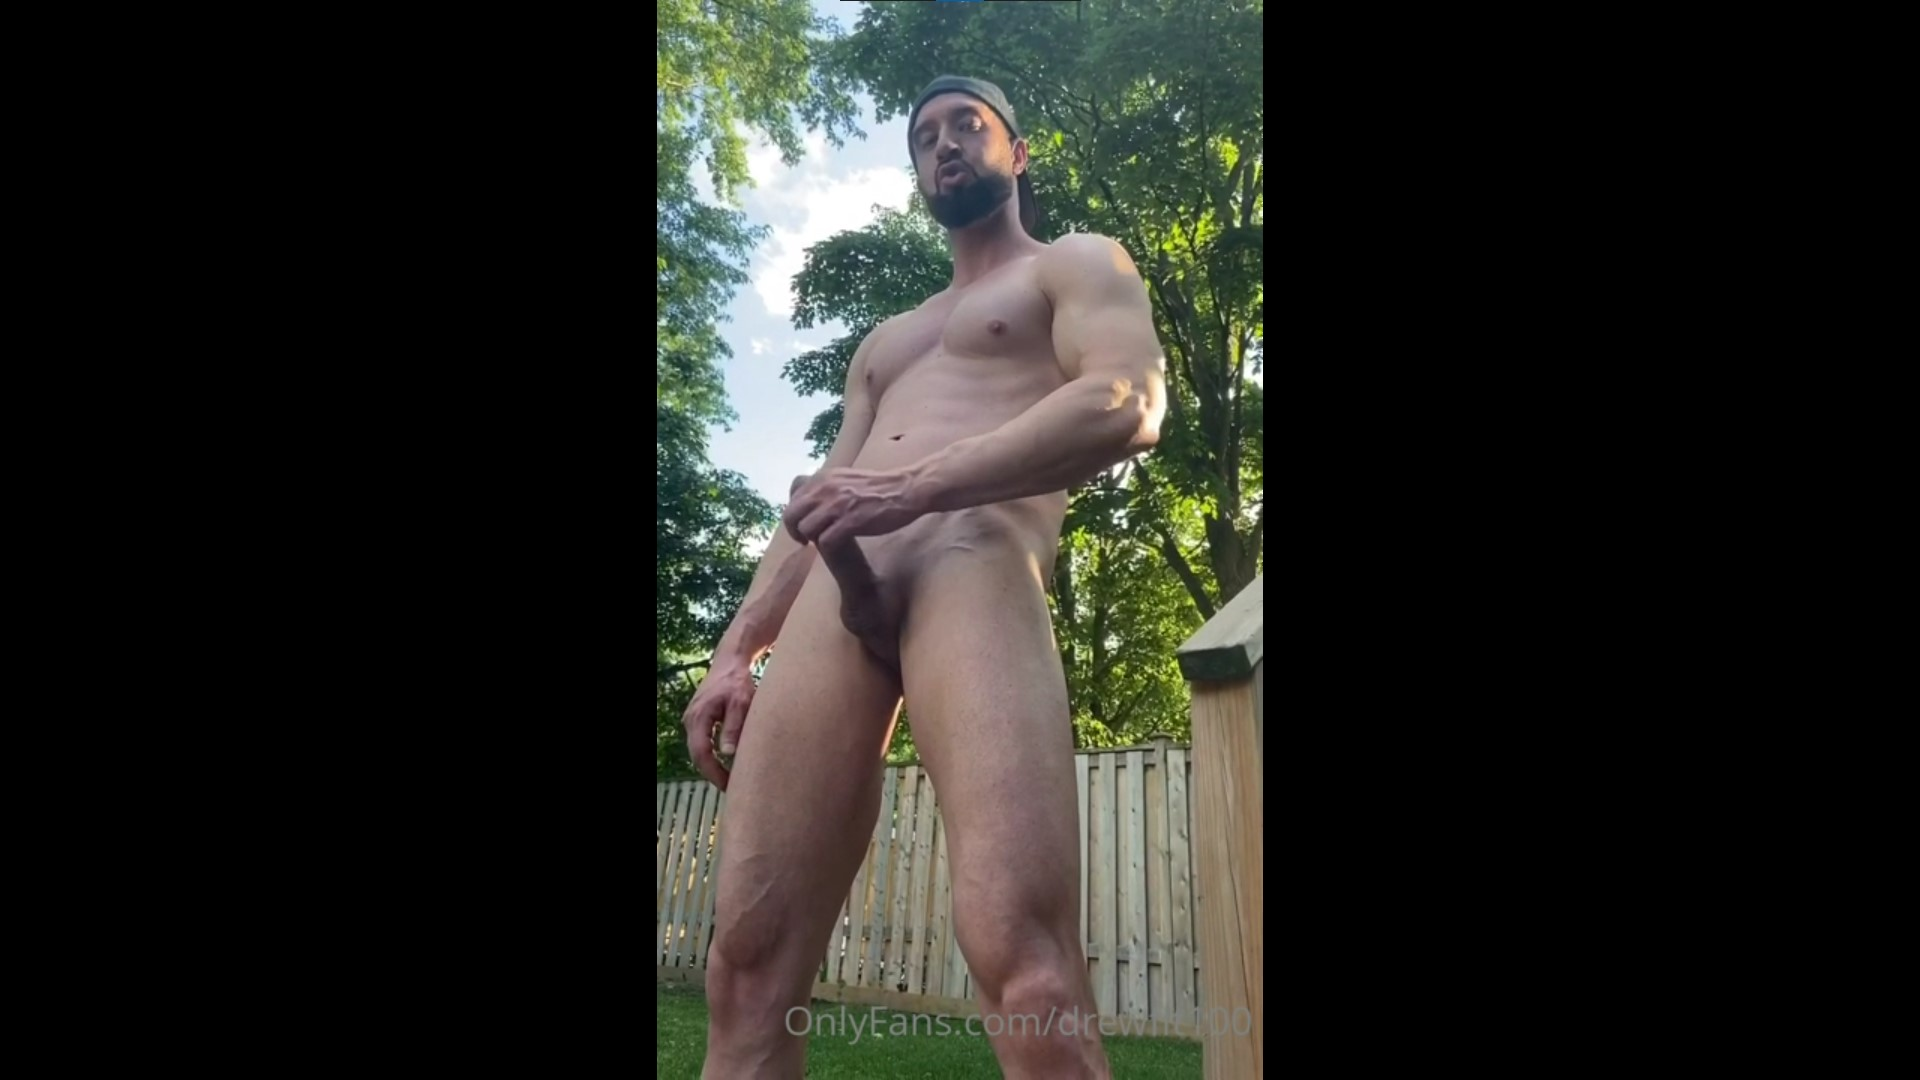 Jerking off outside and shooting a big load - DrewFit100